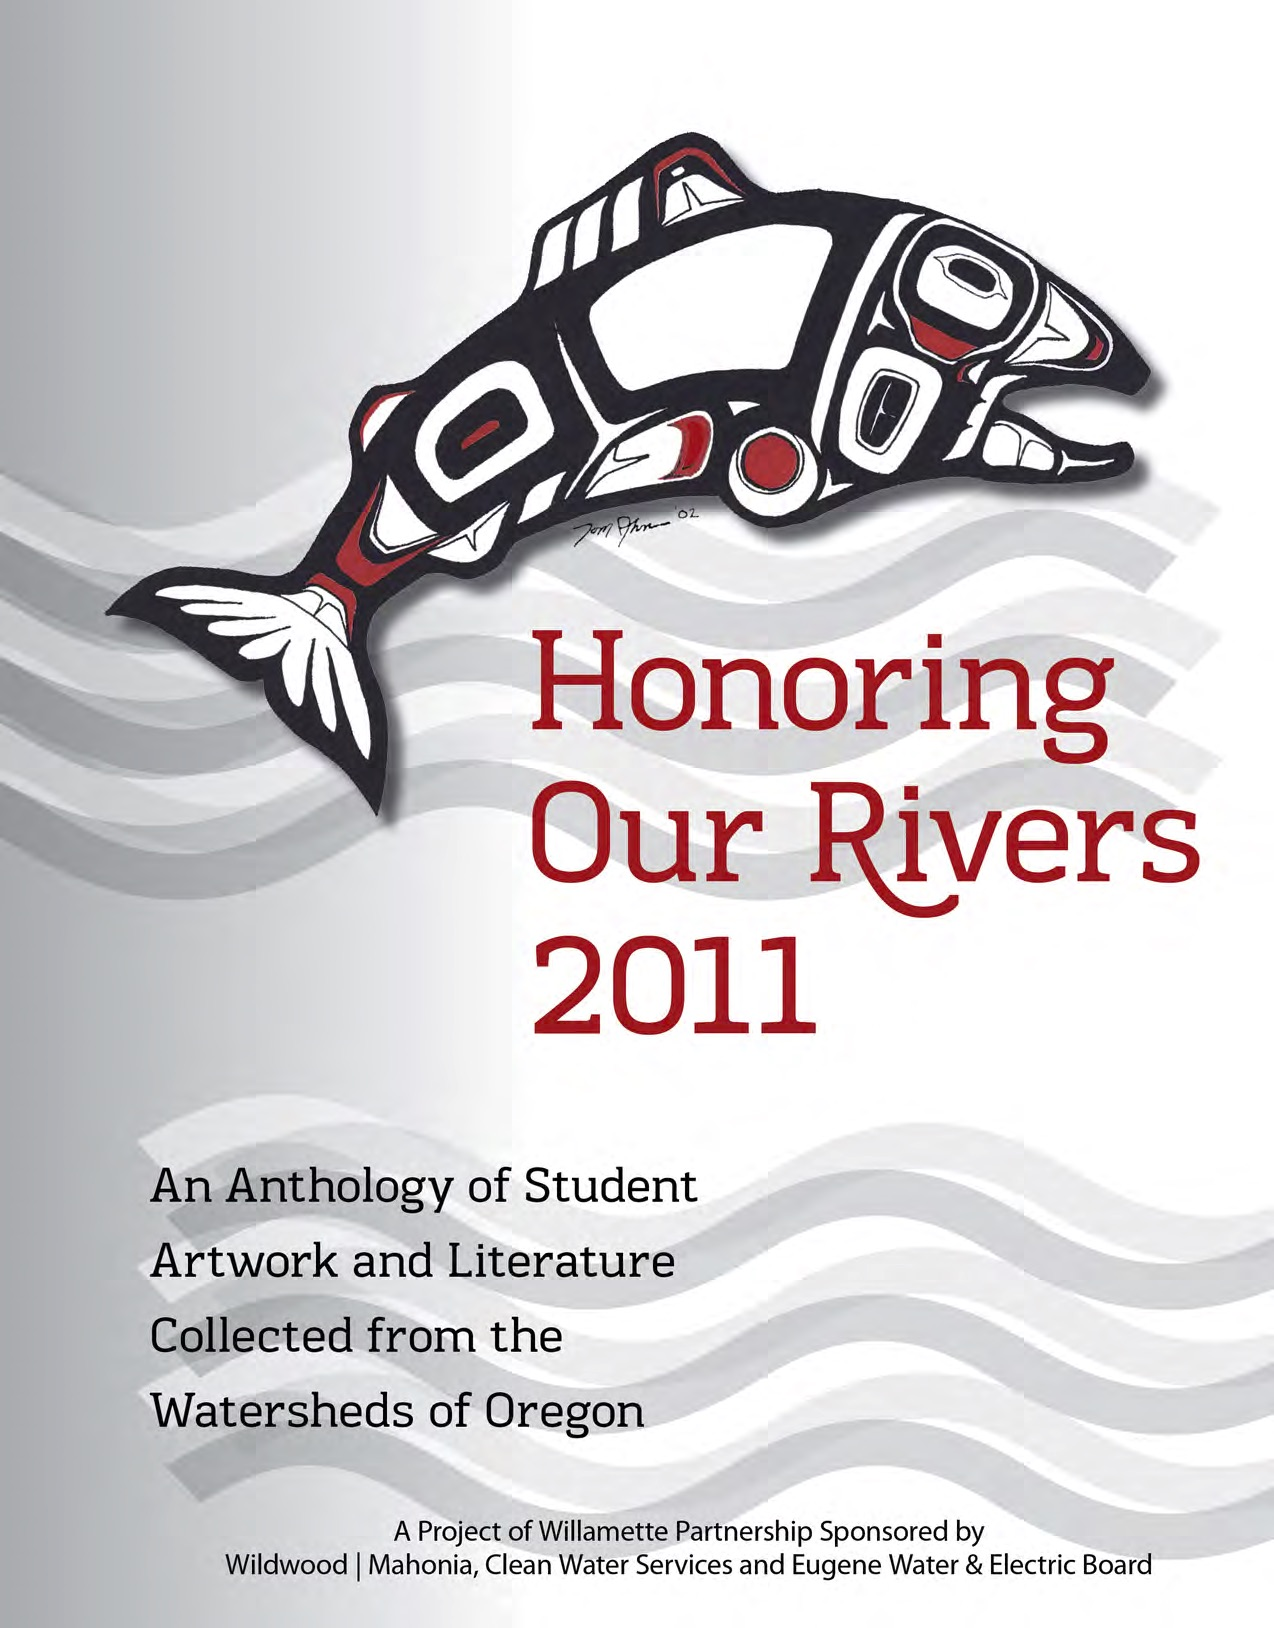 Honoring Our Rivers 2011